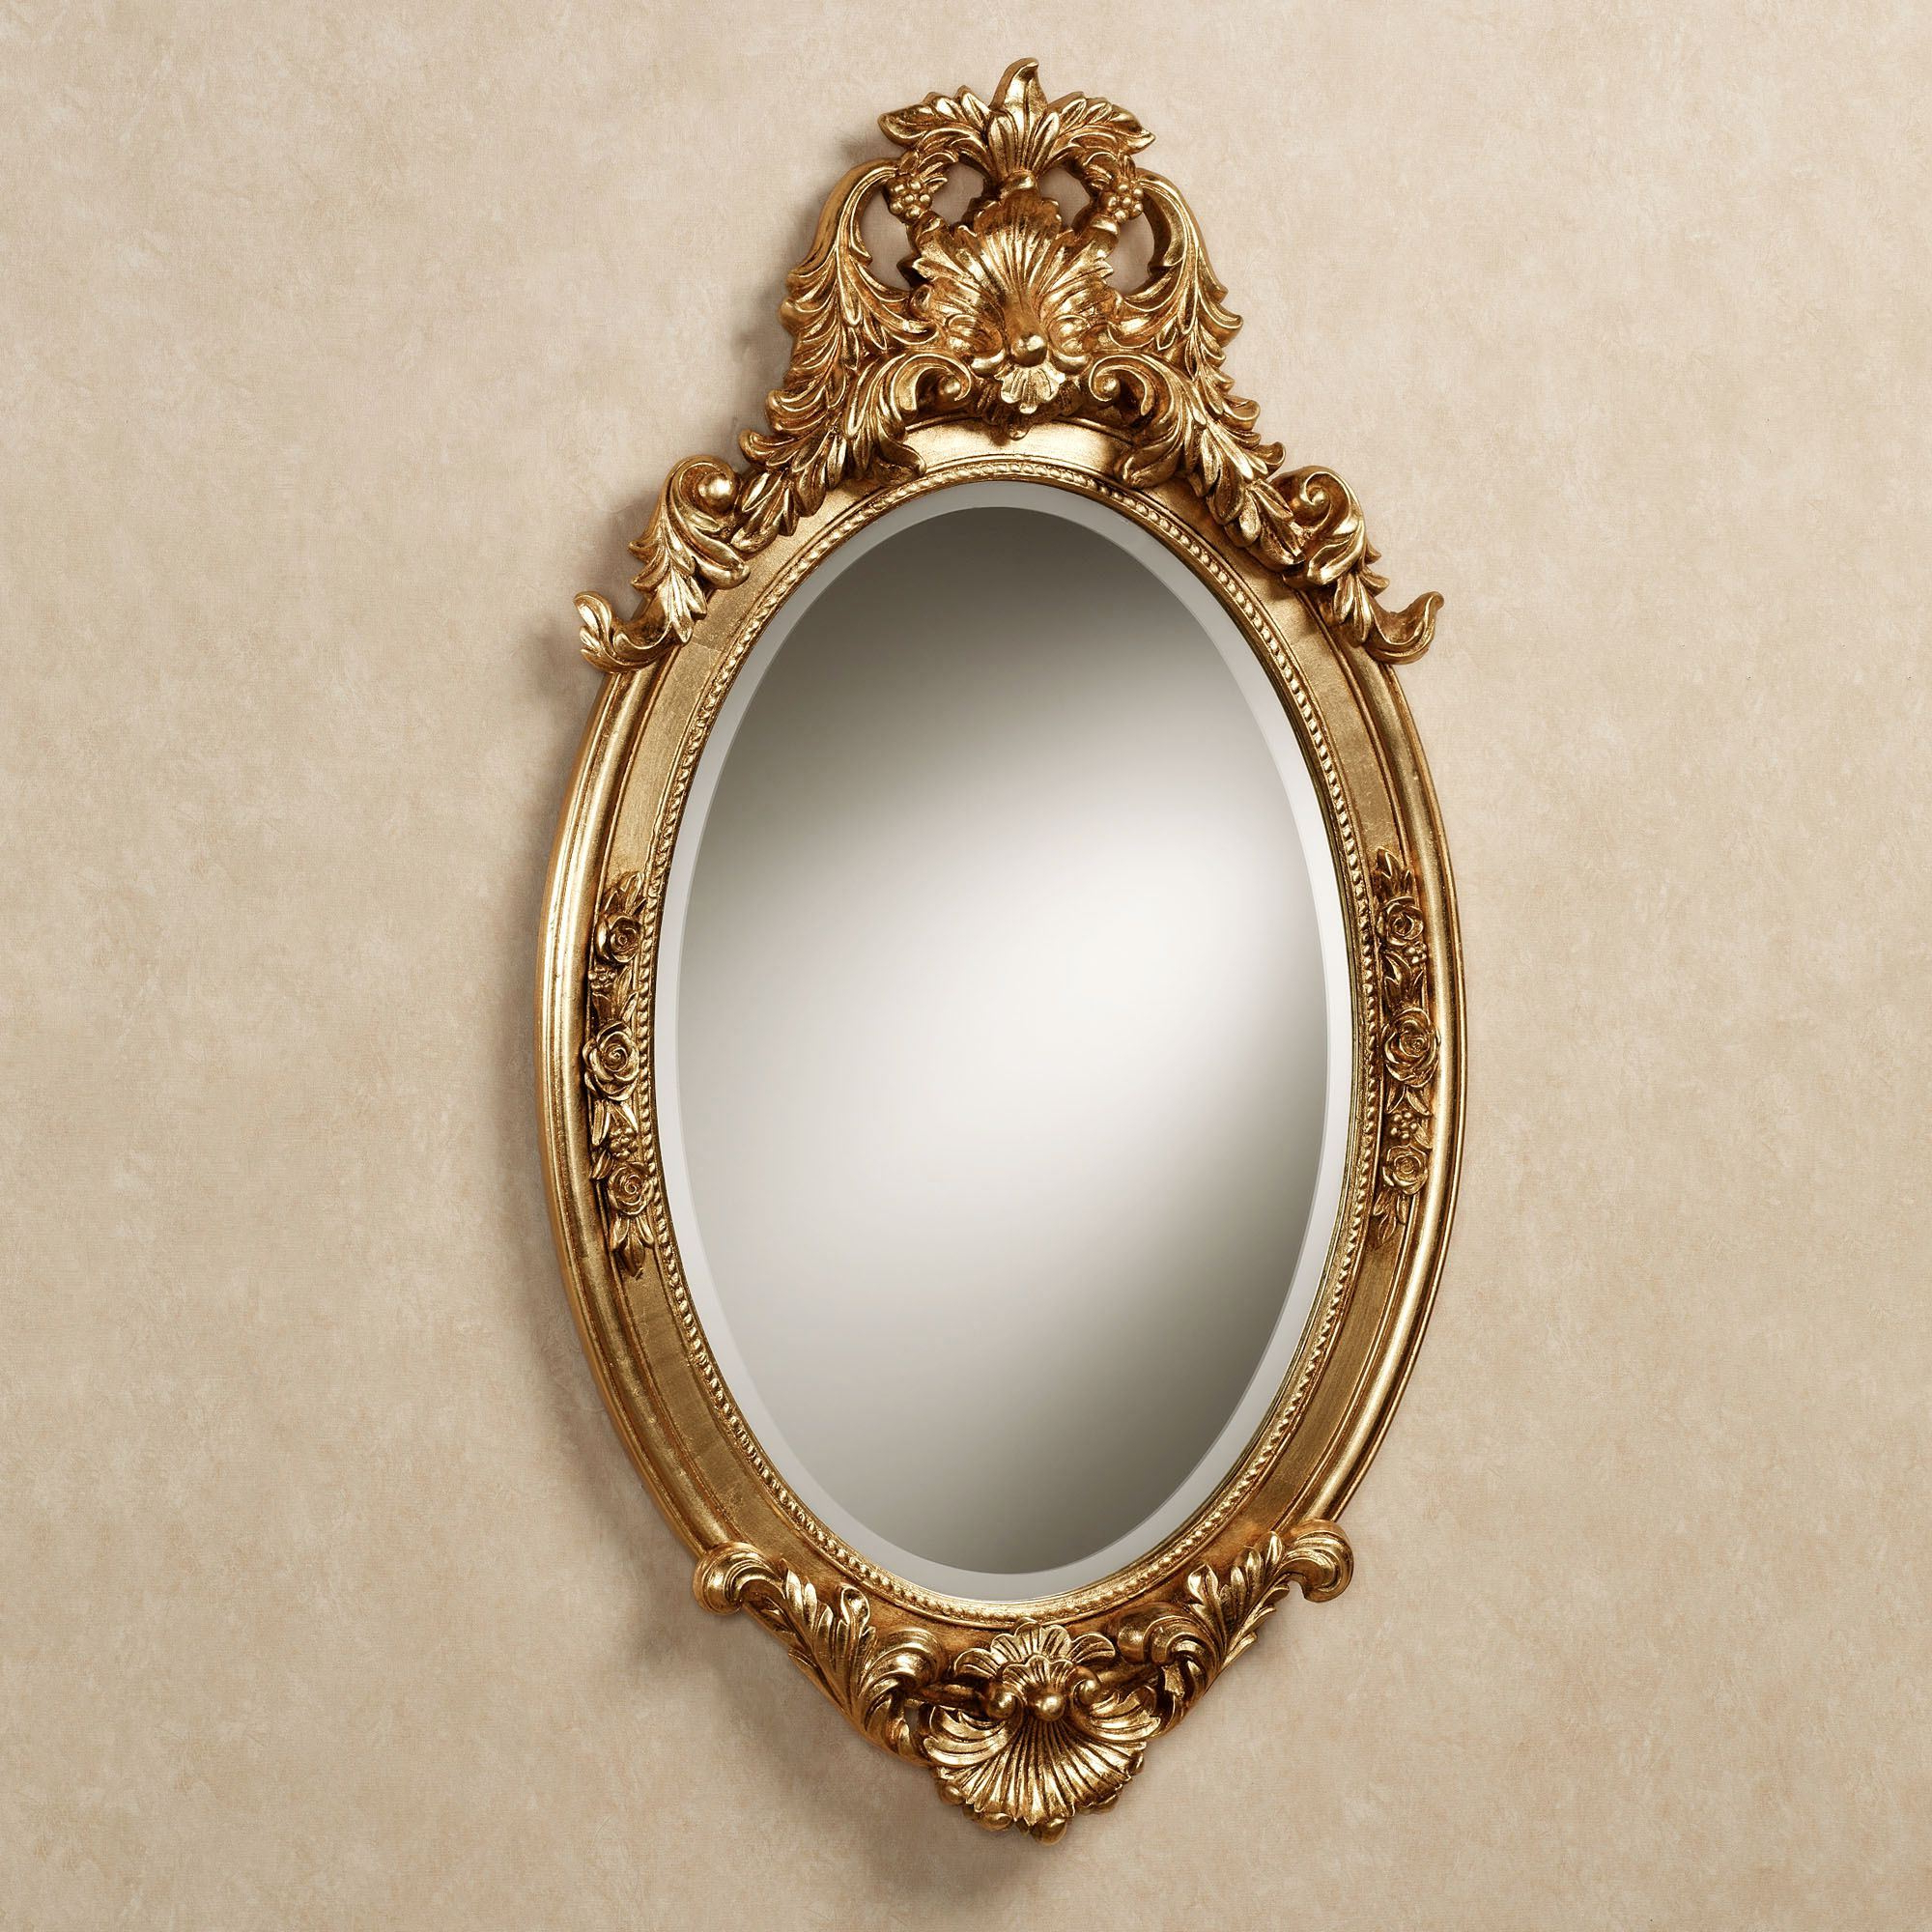 Decorative Oval Mirrors Small Gold Frame Antique Mirror For 2019 Small Gold Wall Mirrors (View 3 of 20)